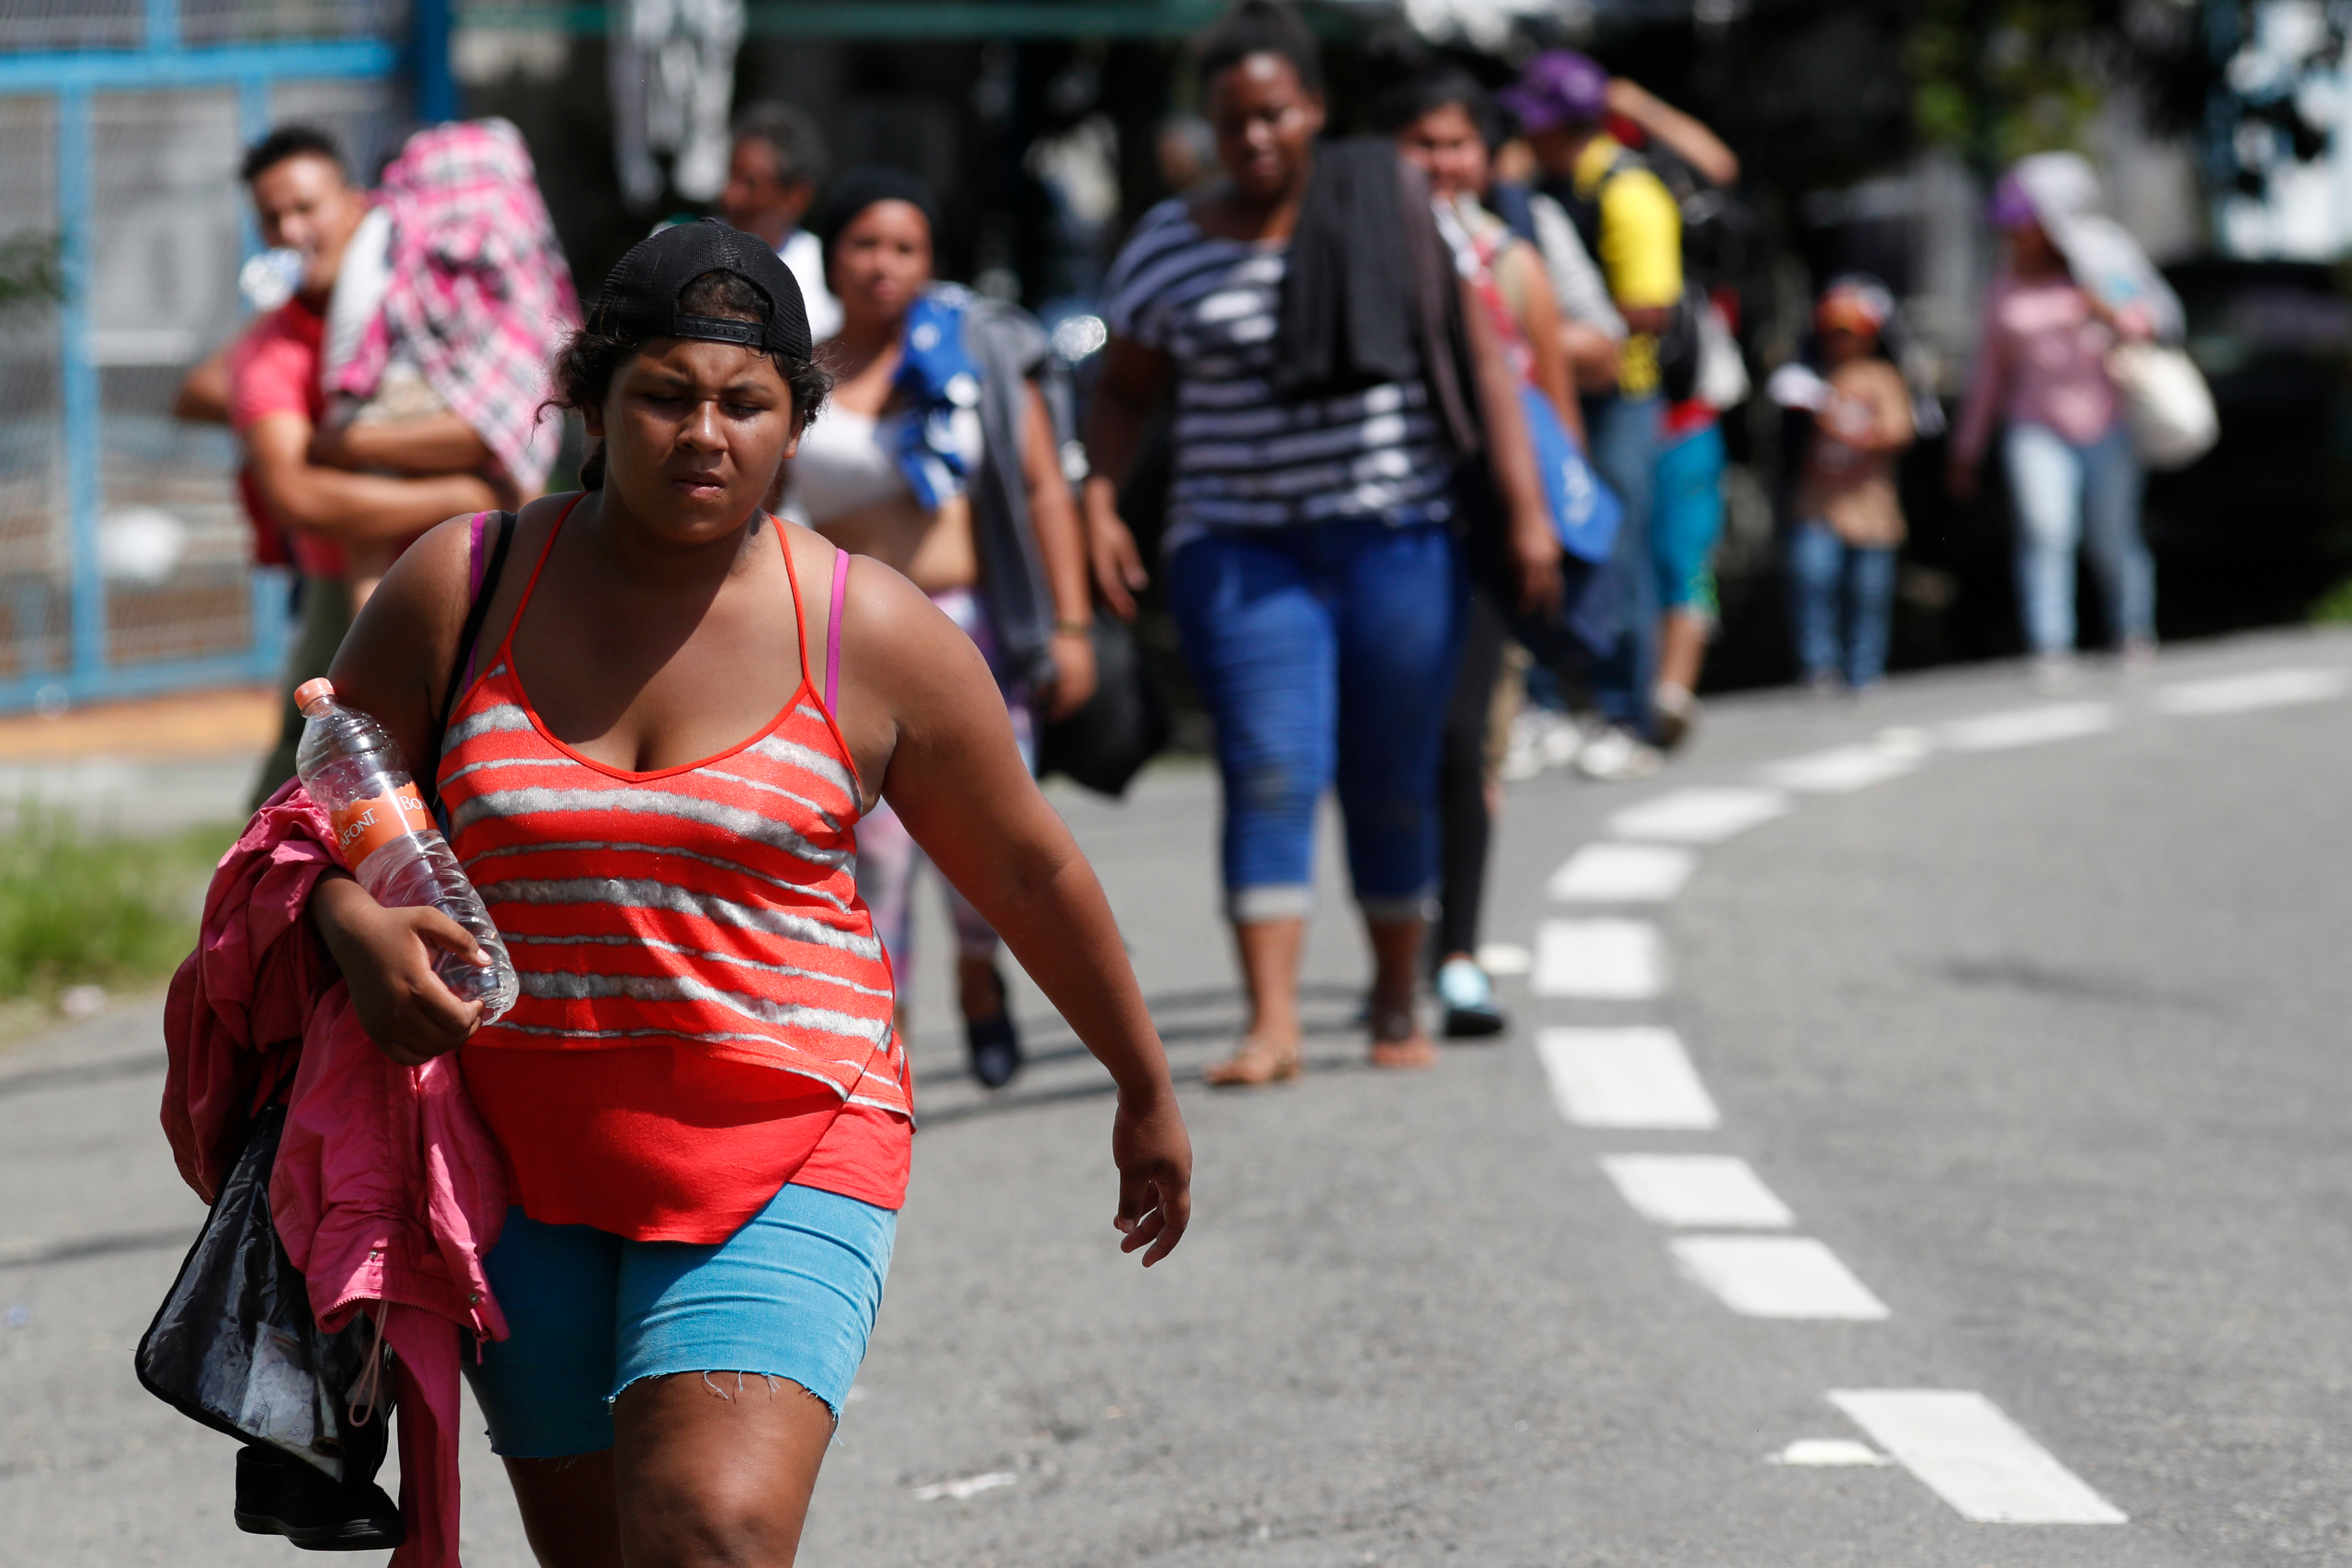 Central American migrants making their way to the U.S. arrive by foot to Tapachula, Mexico, 21 Oct 2018.